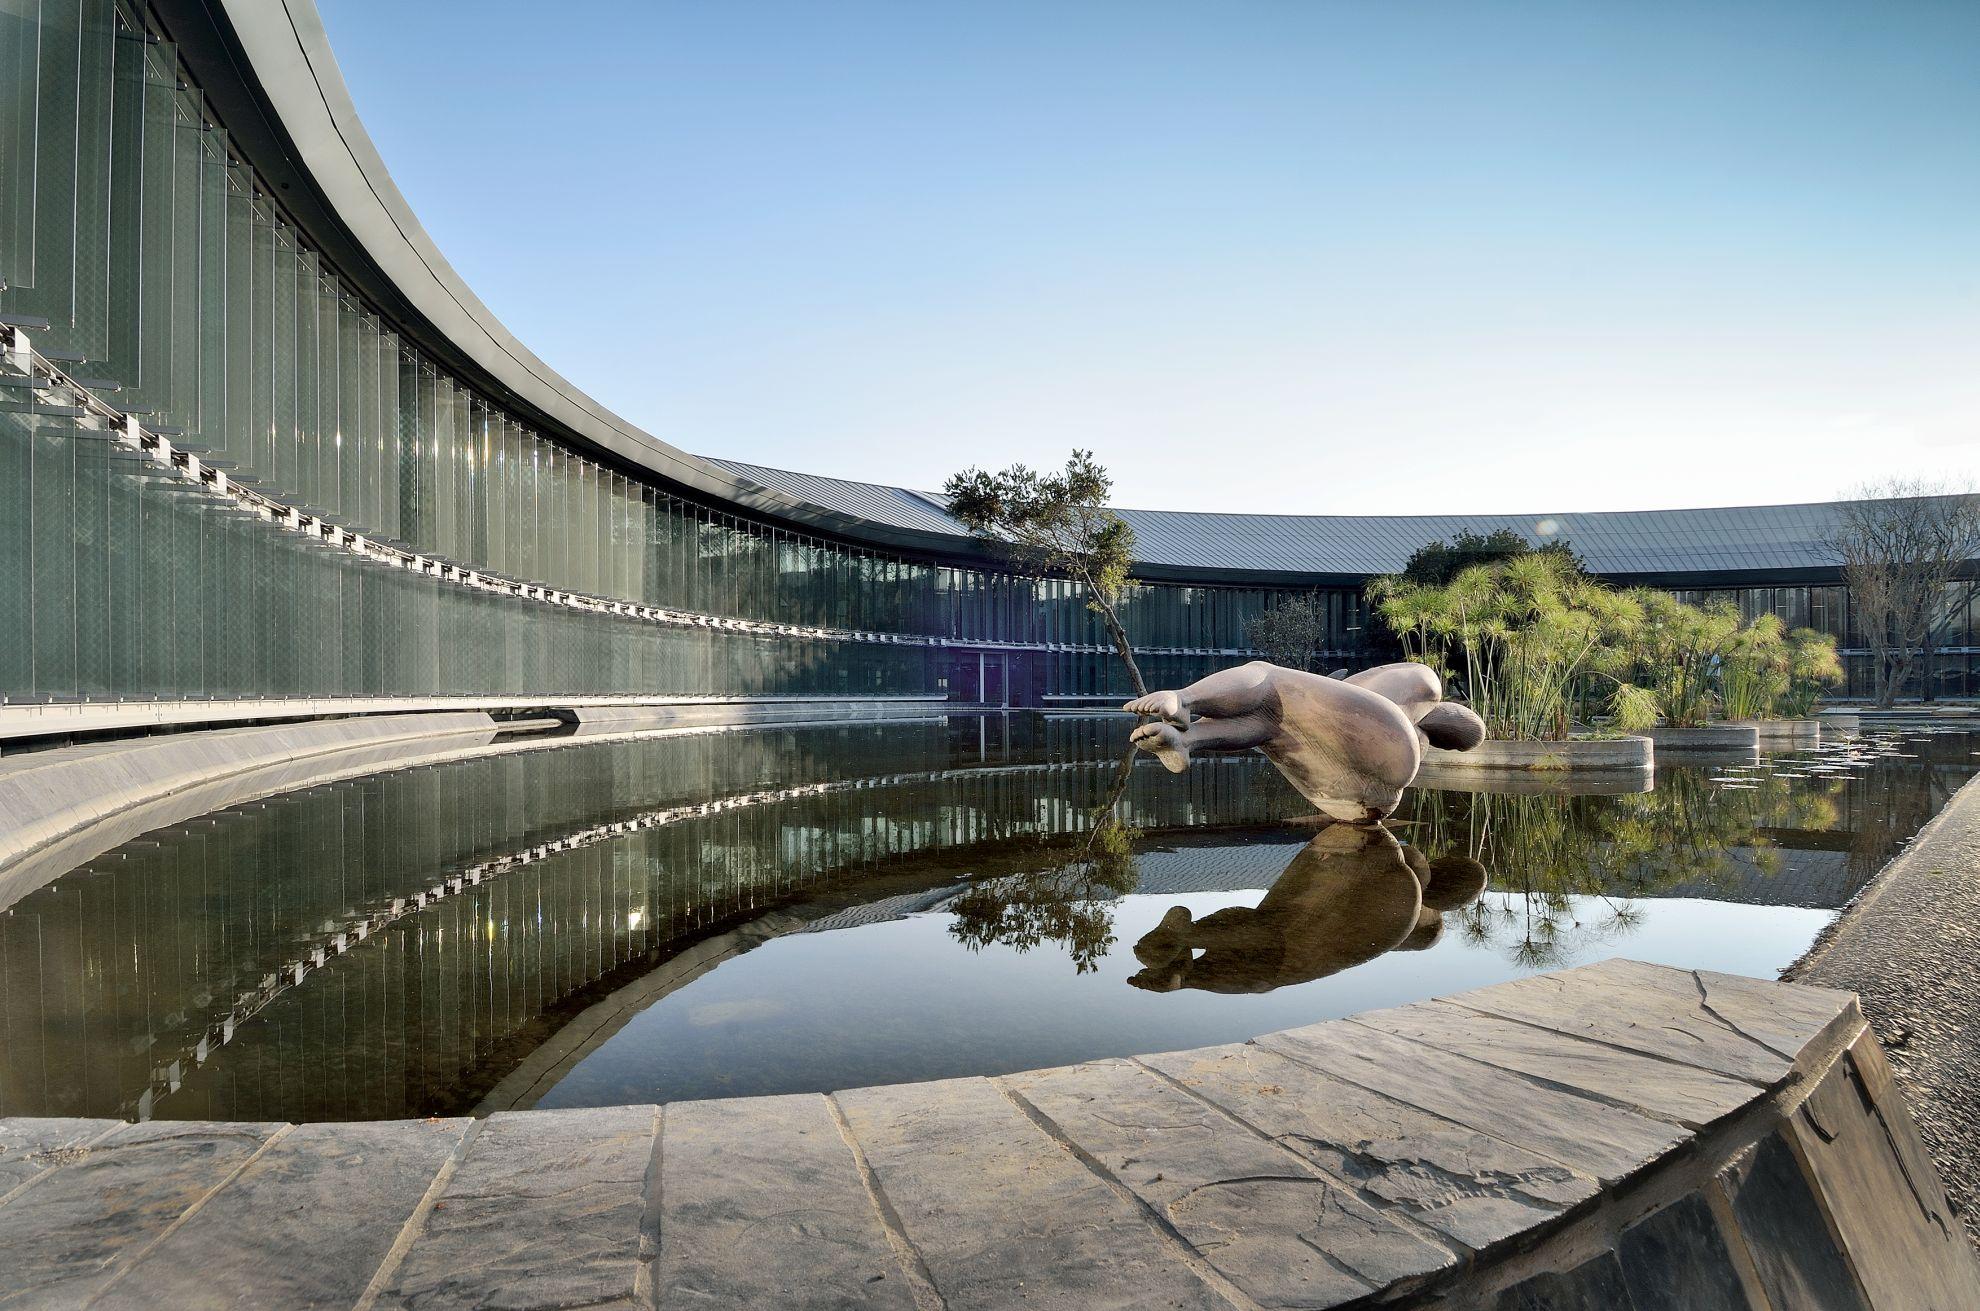 bmw-south-africa-awarded-5-star-green-building-rating-for-refurbished-head-office